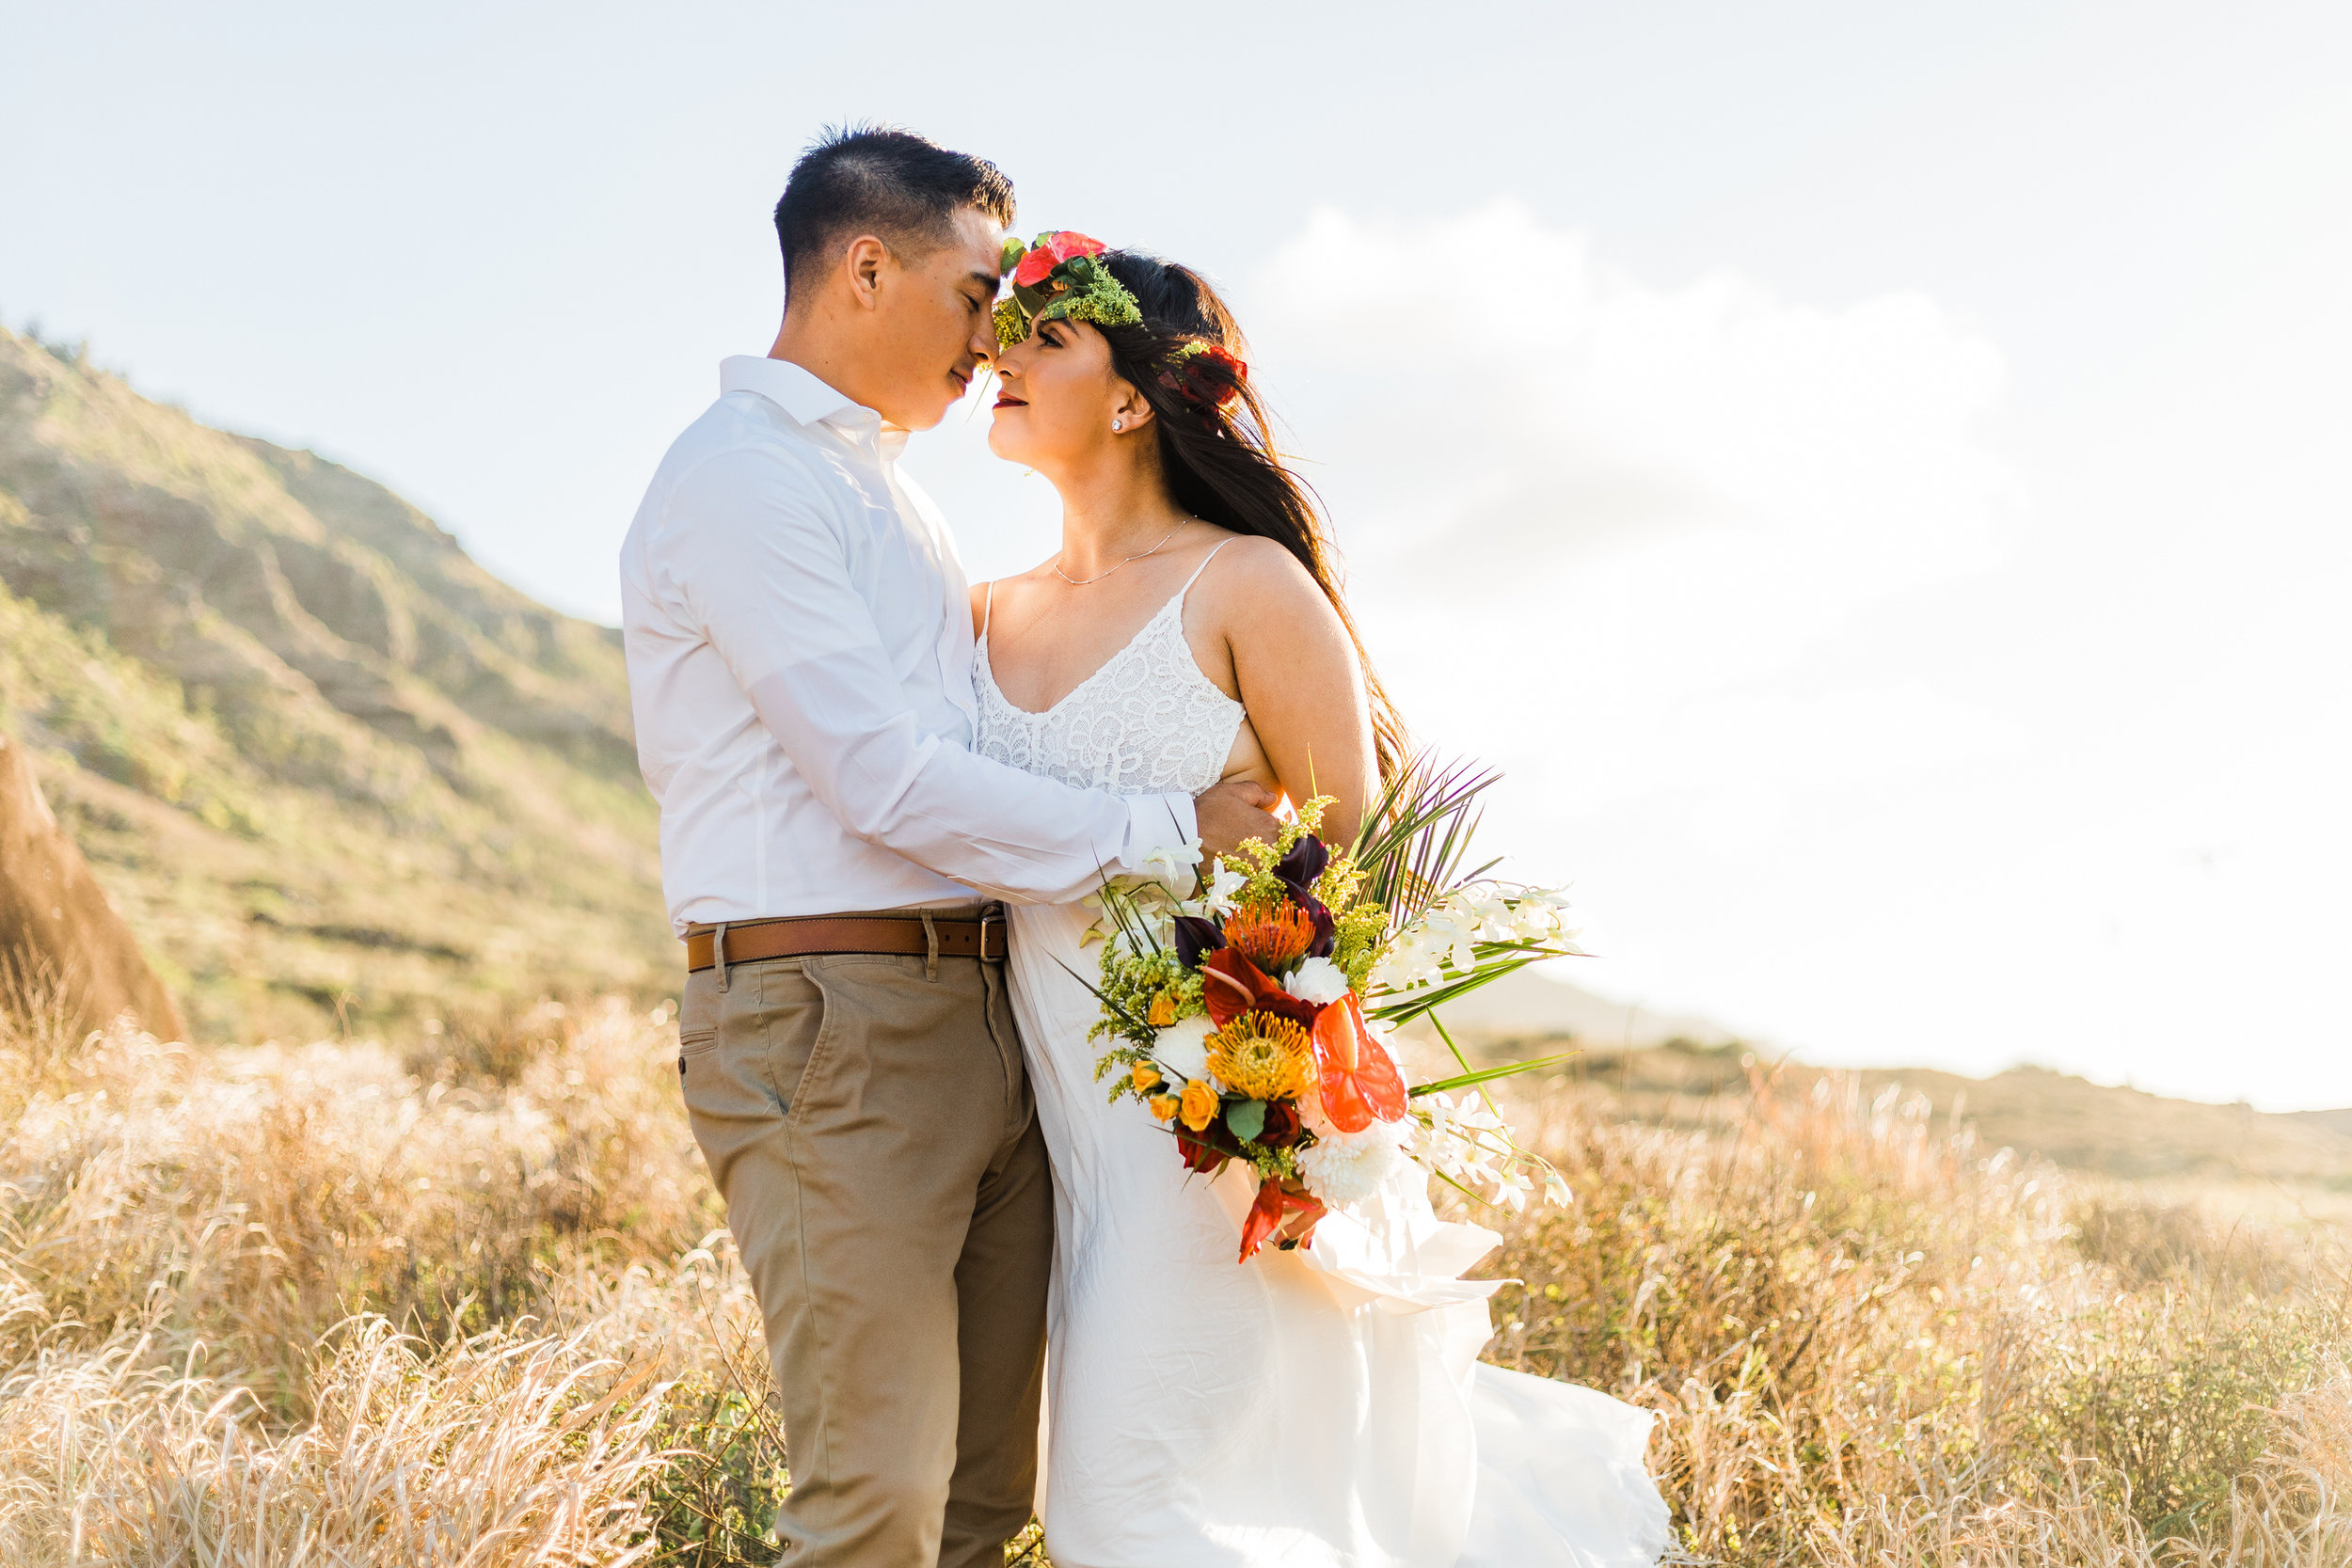 intimate-elopement-sunset-oahu-haku-7.jpg